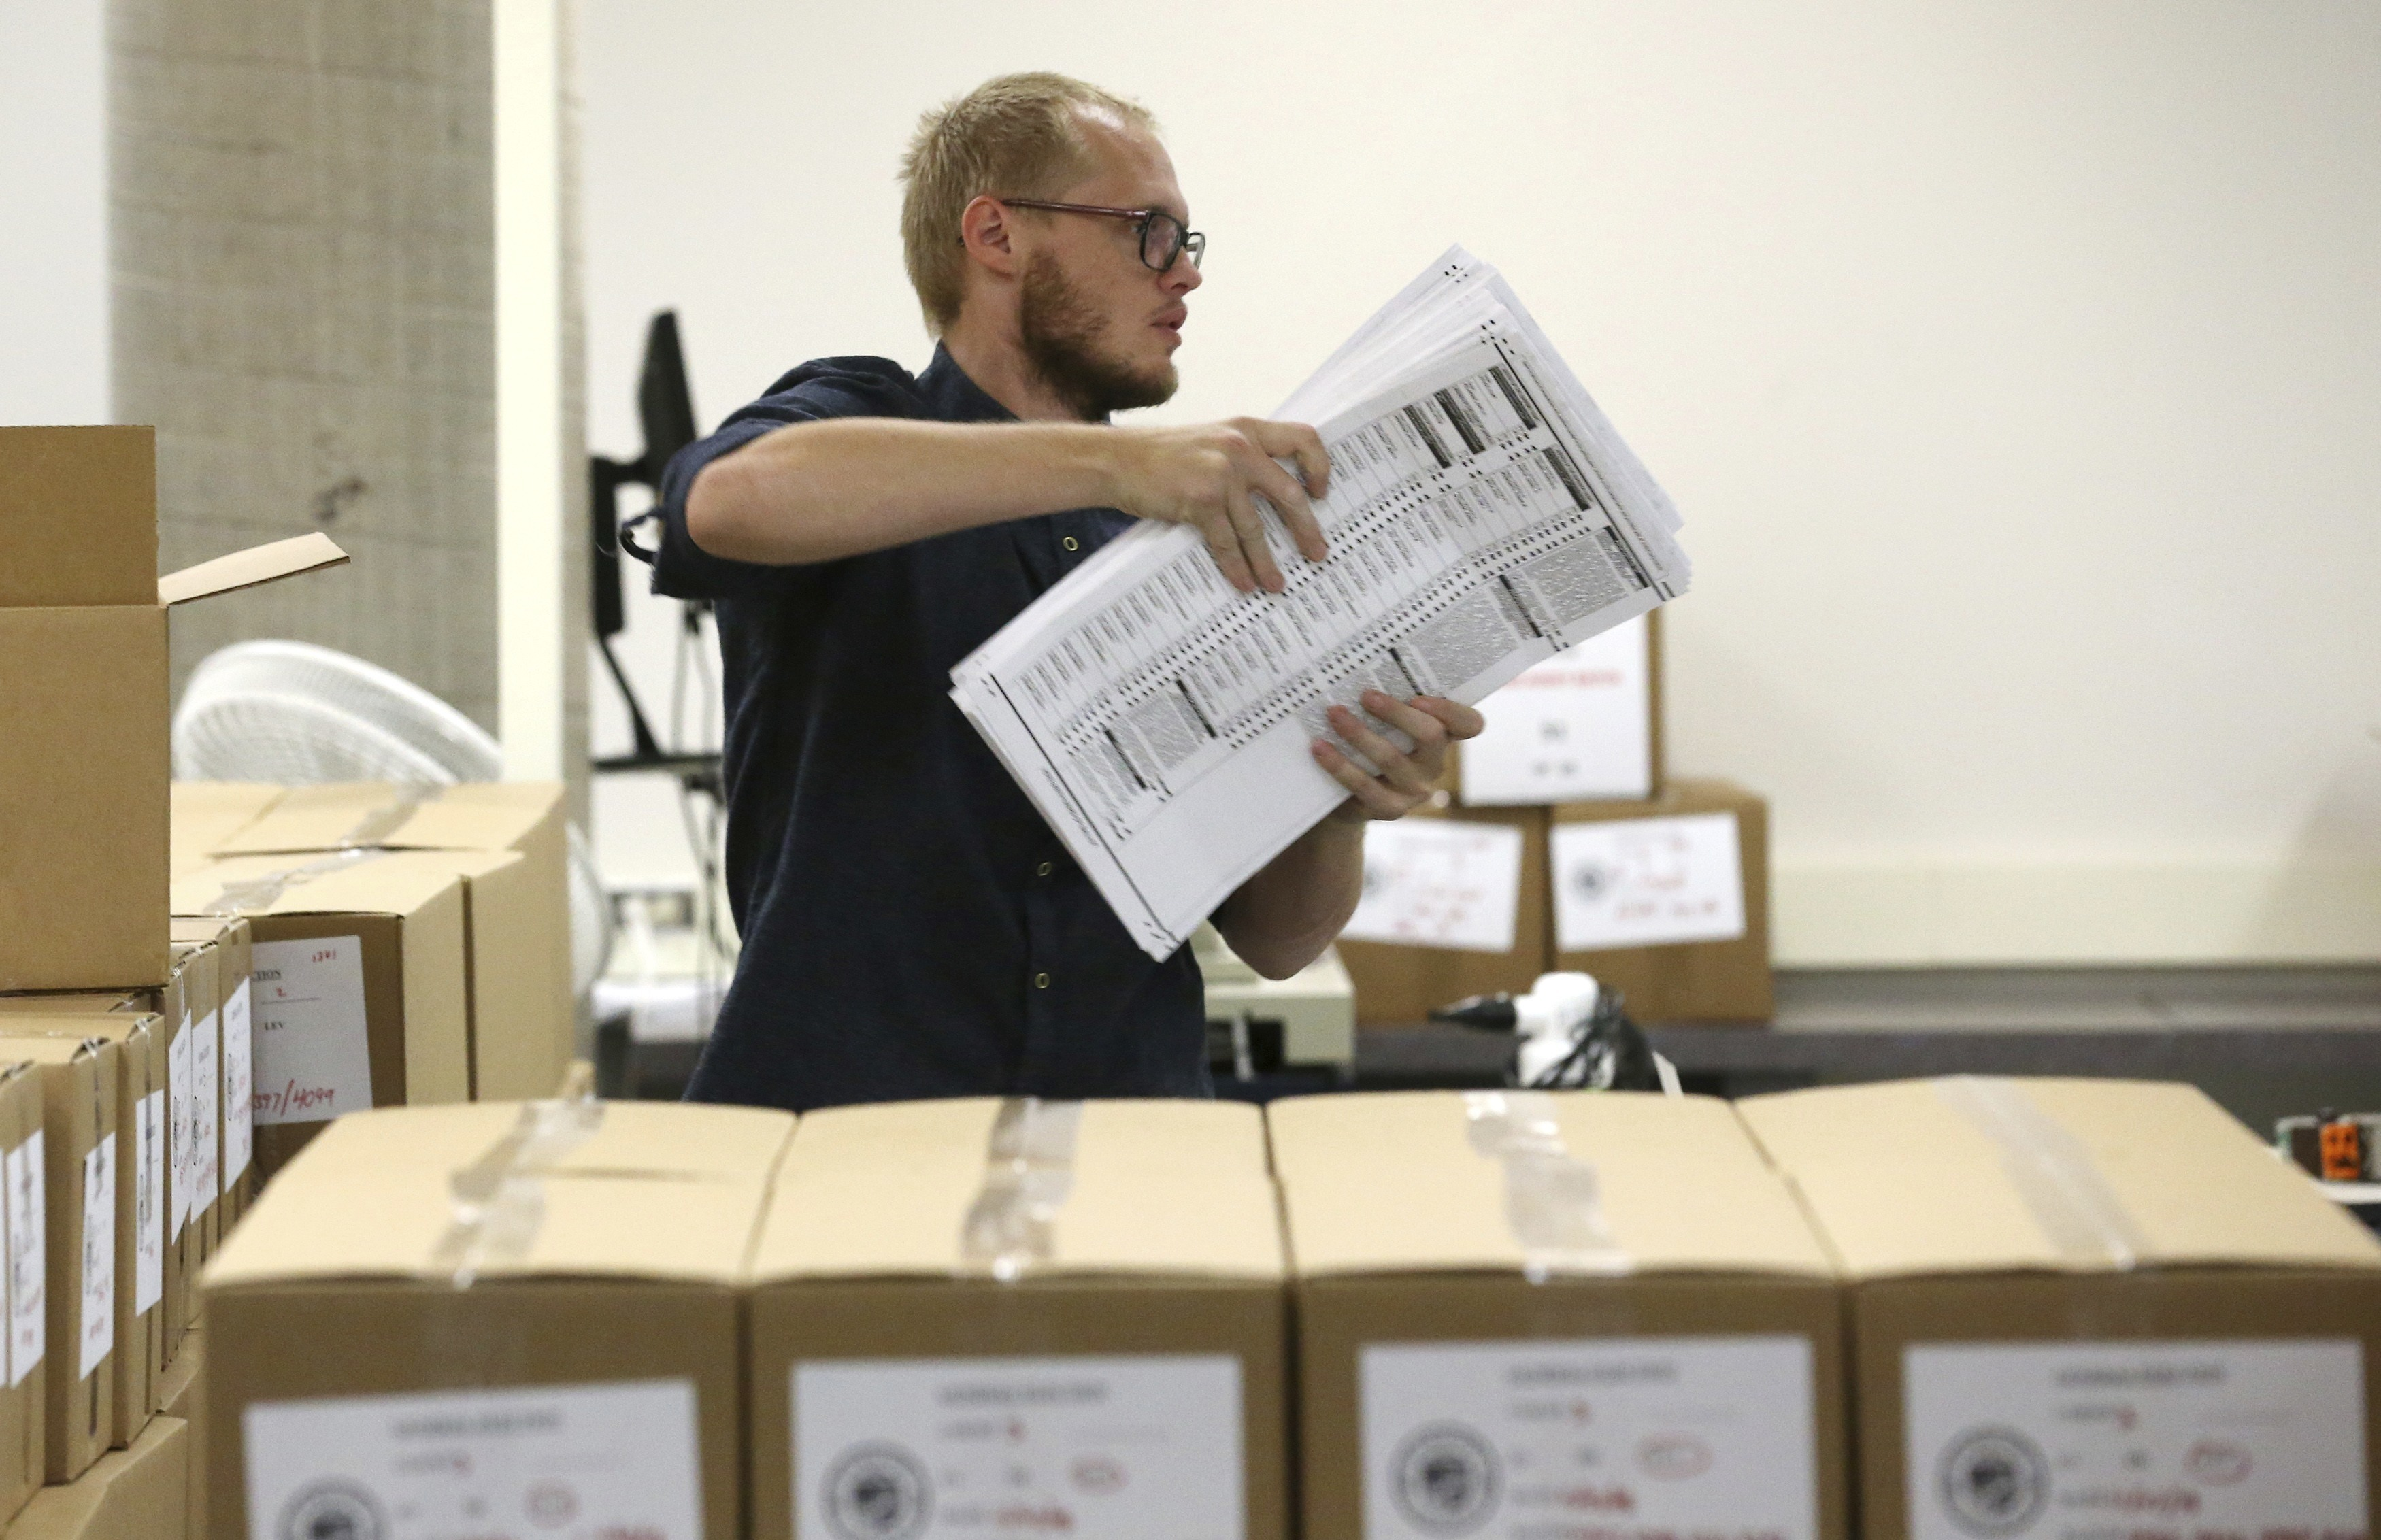 A worker carries ballots to be verified at the Maricopa County Recorder's Office Thursday, Nov. 8, 2018, in Phoenix. (AP Photo/Ross D. Franklin)